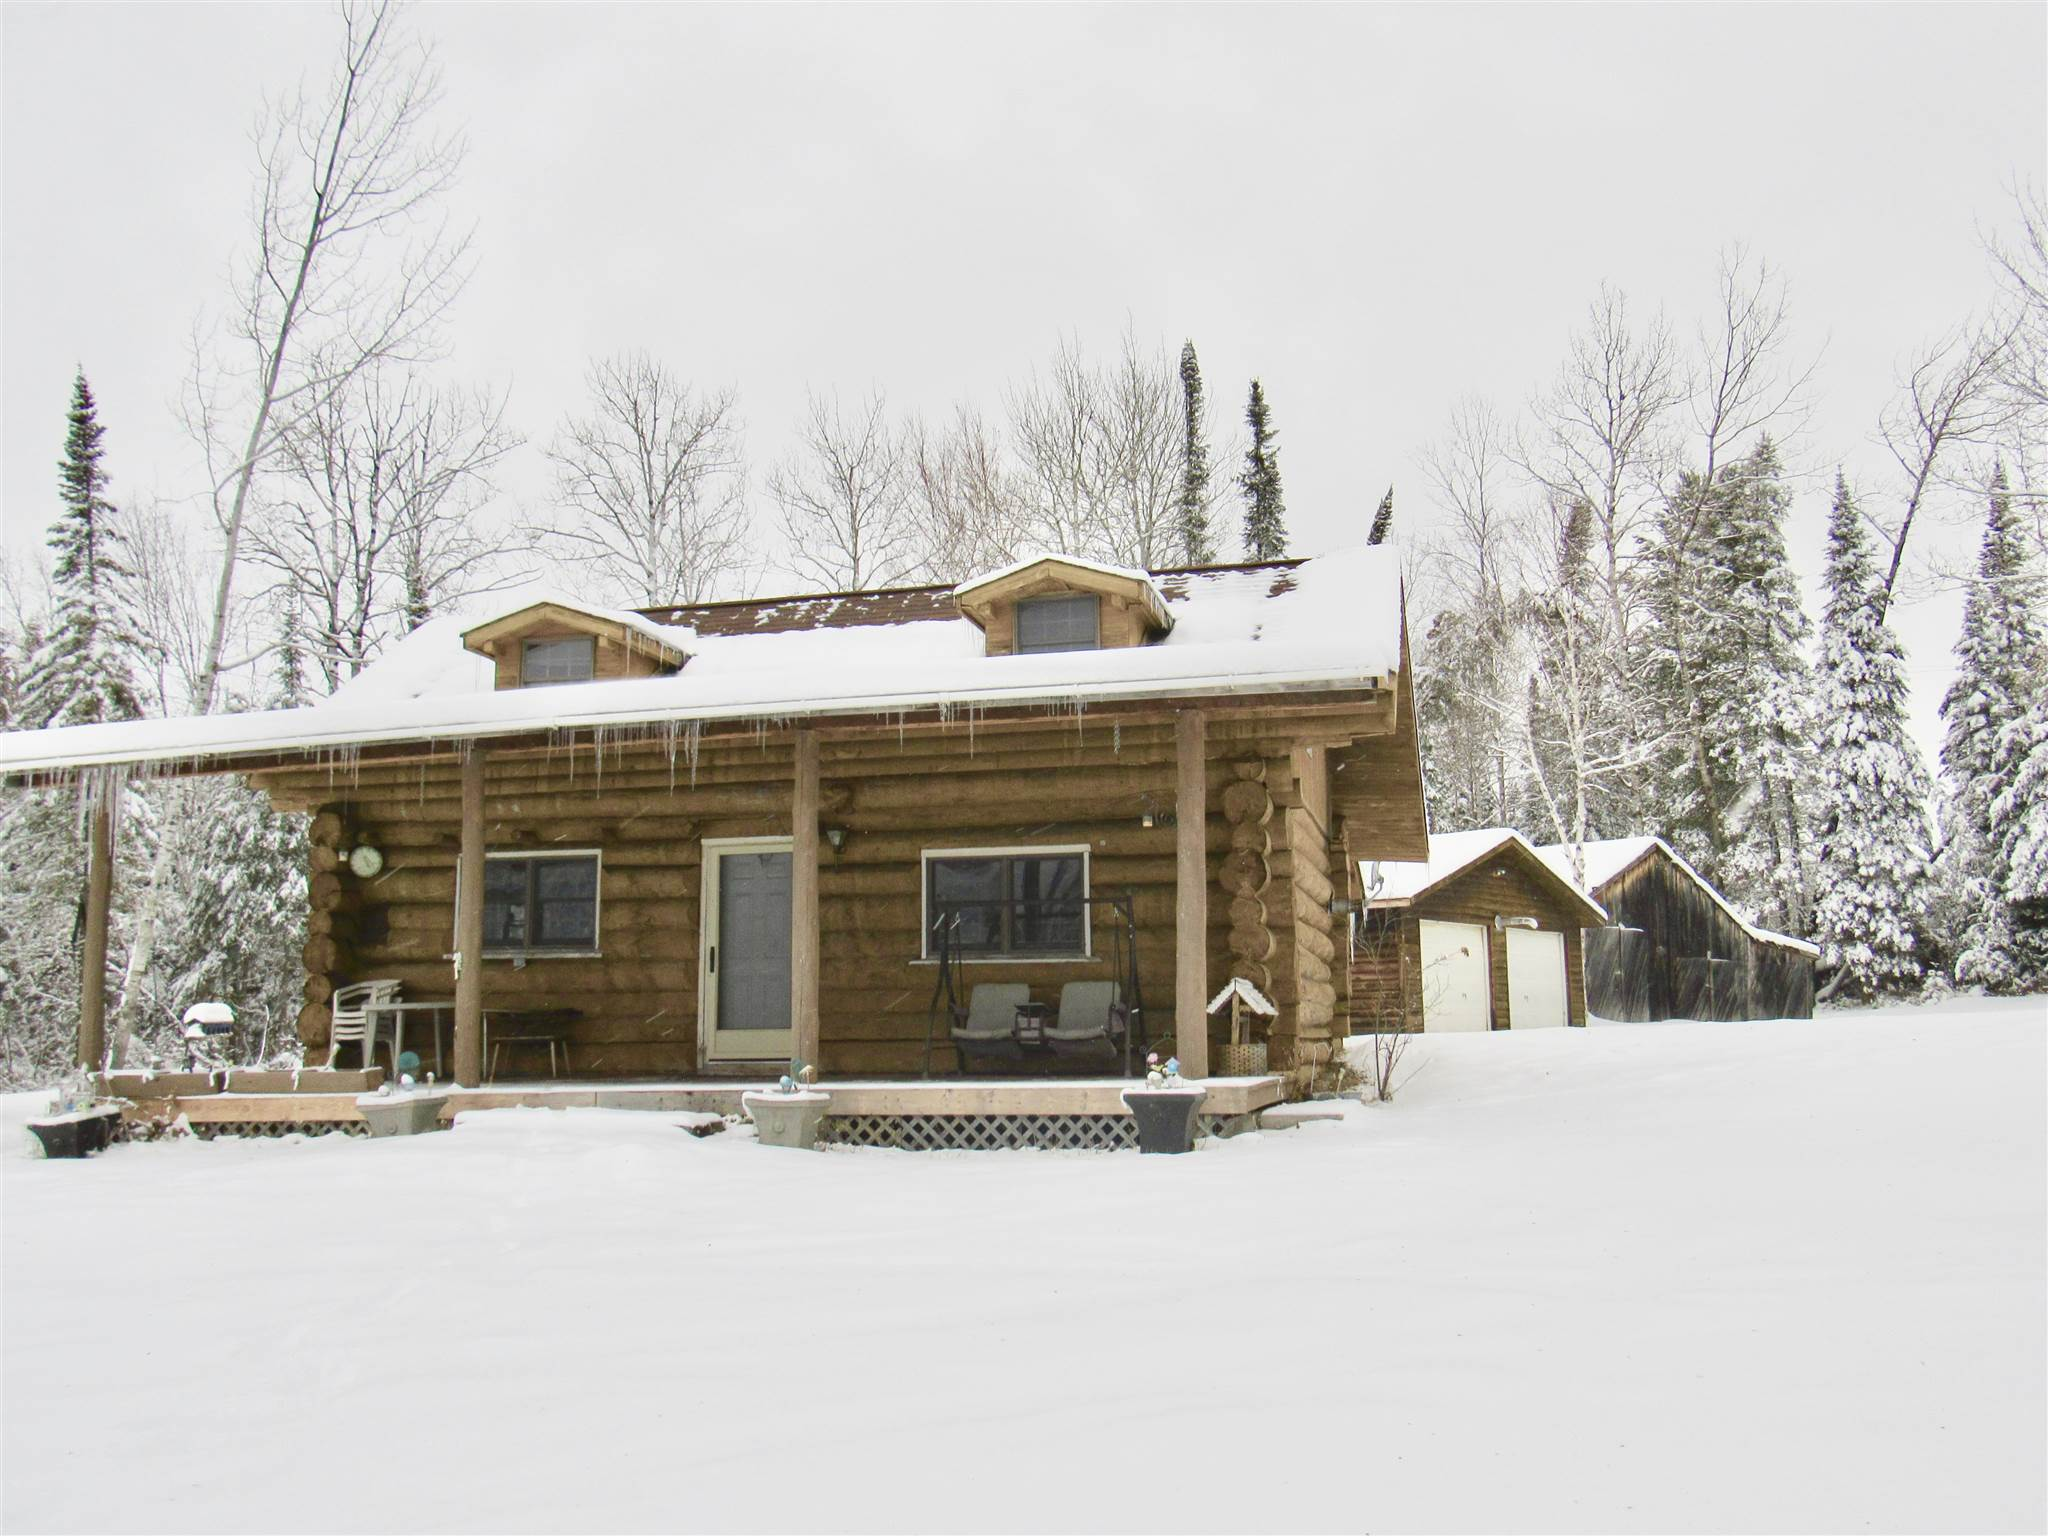 W 51 Lot 2 Rudolph Road, Shebandowan Ontario, Canada